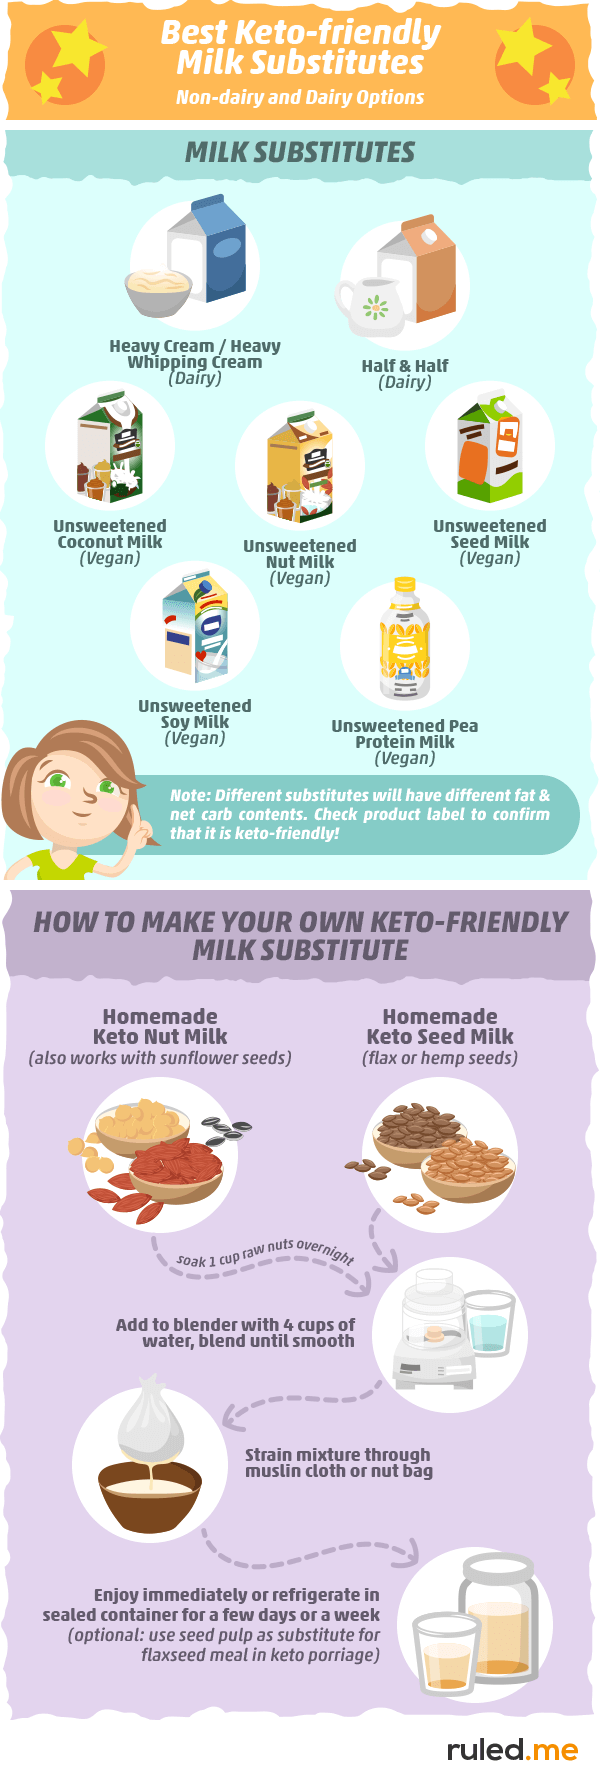 Best Keto friendly Milk Substitutes